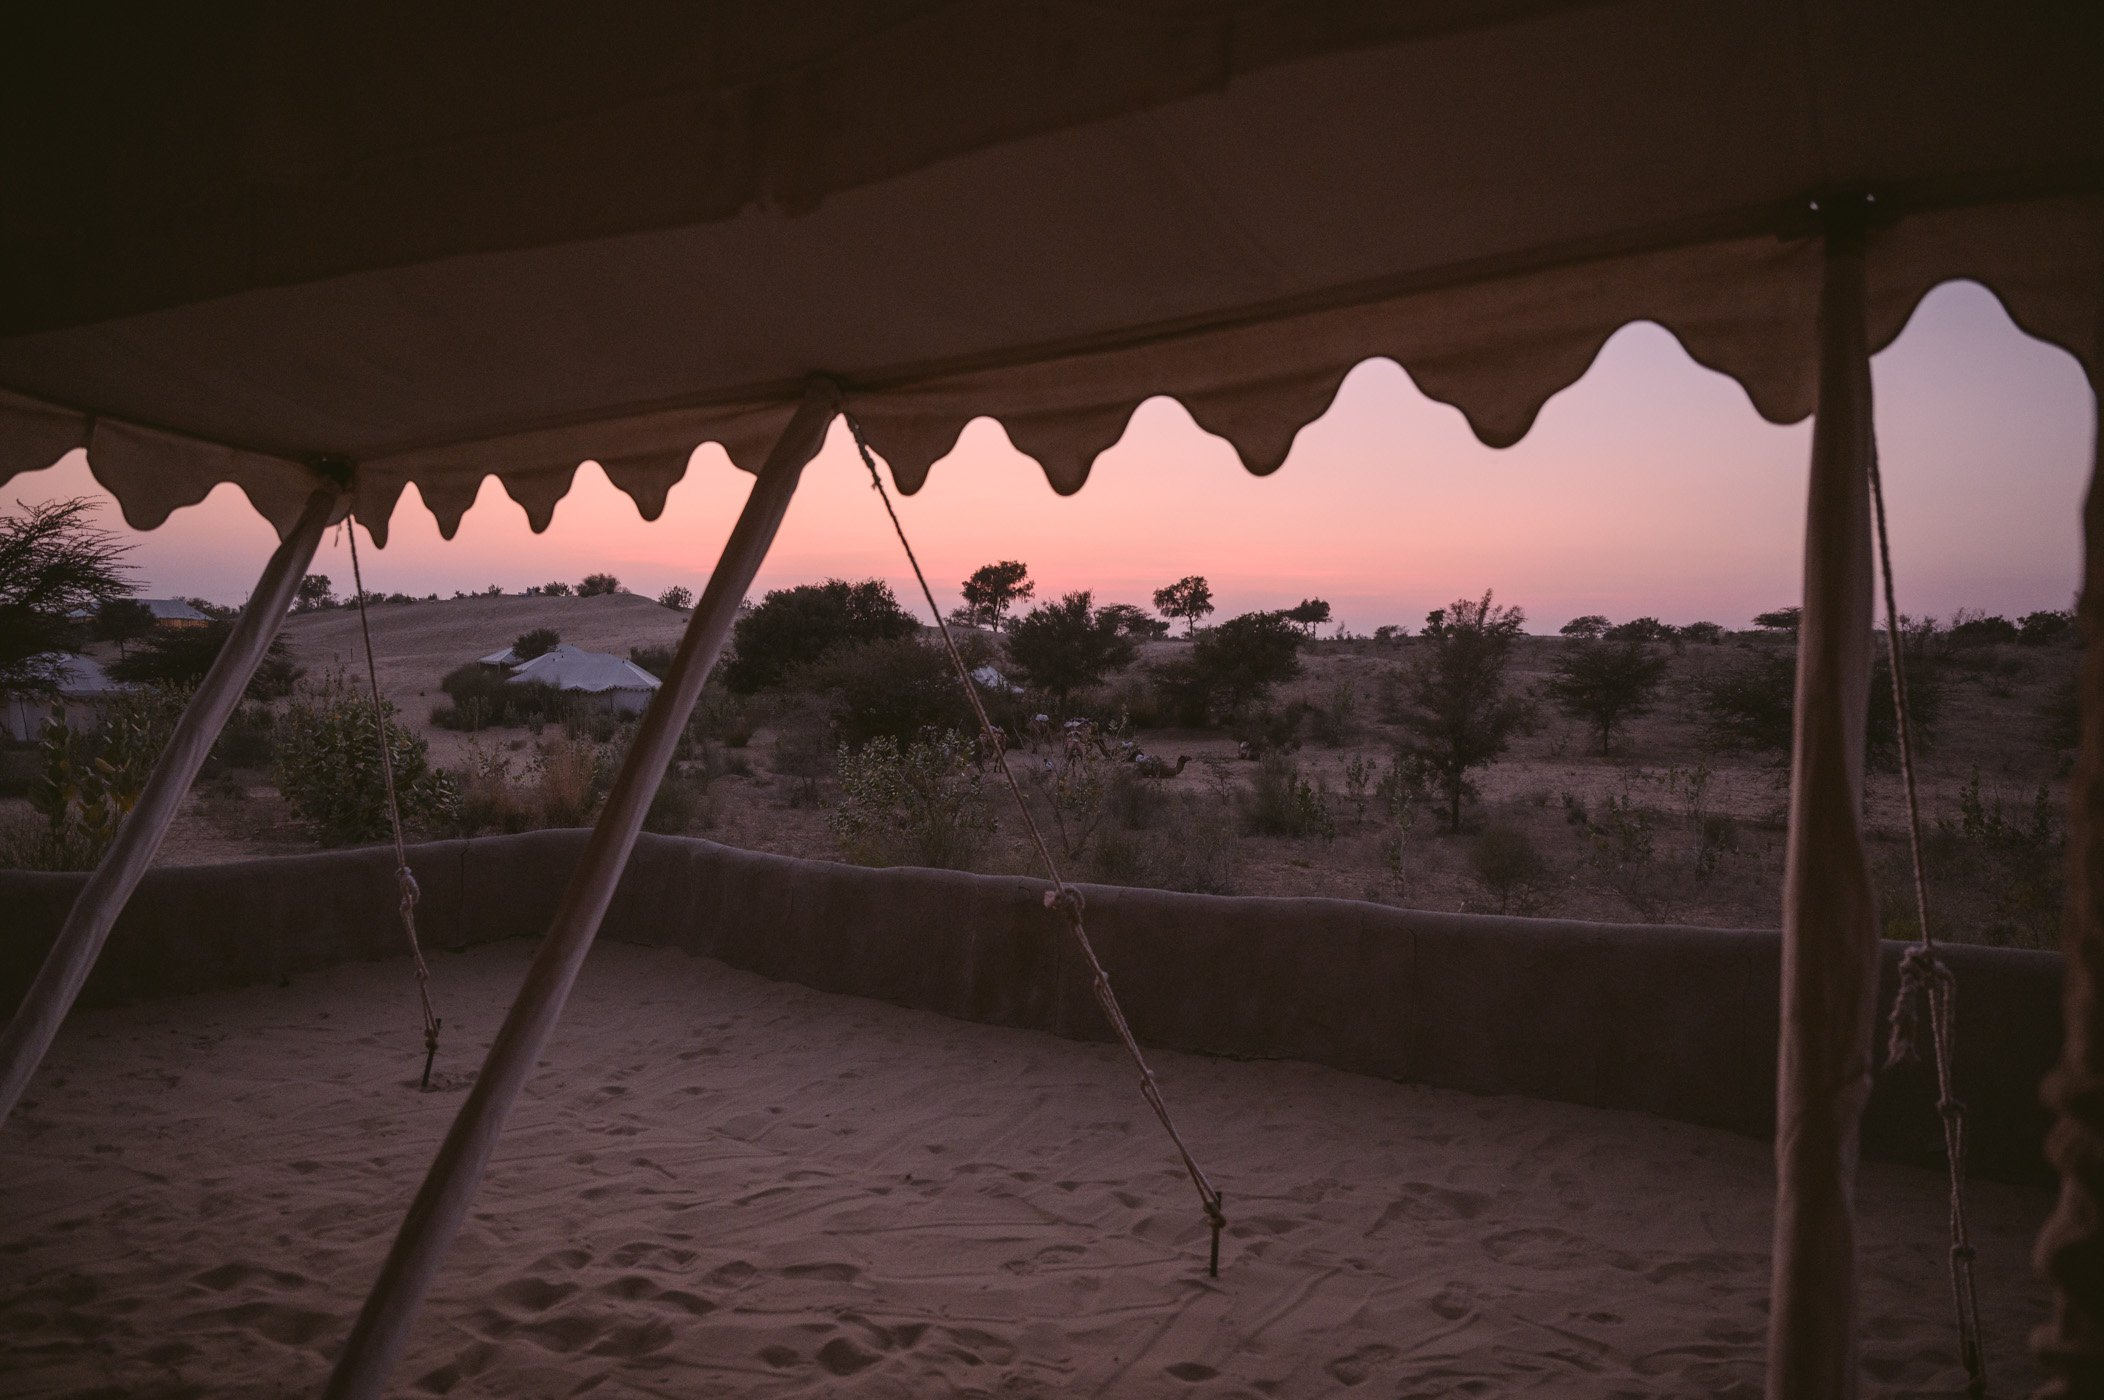 Before sunrise in the Thar desert of Rajasthan